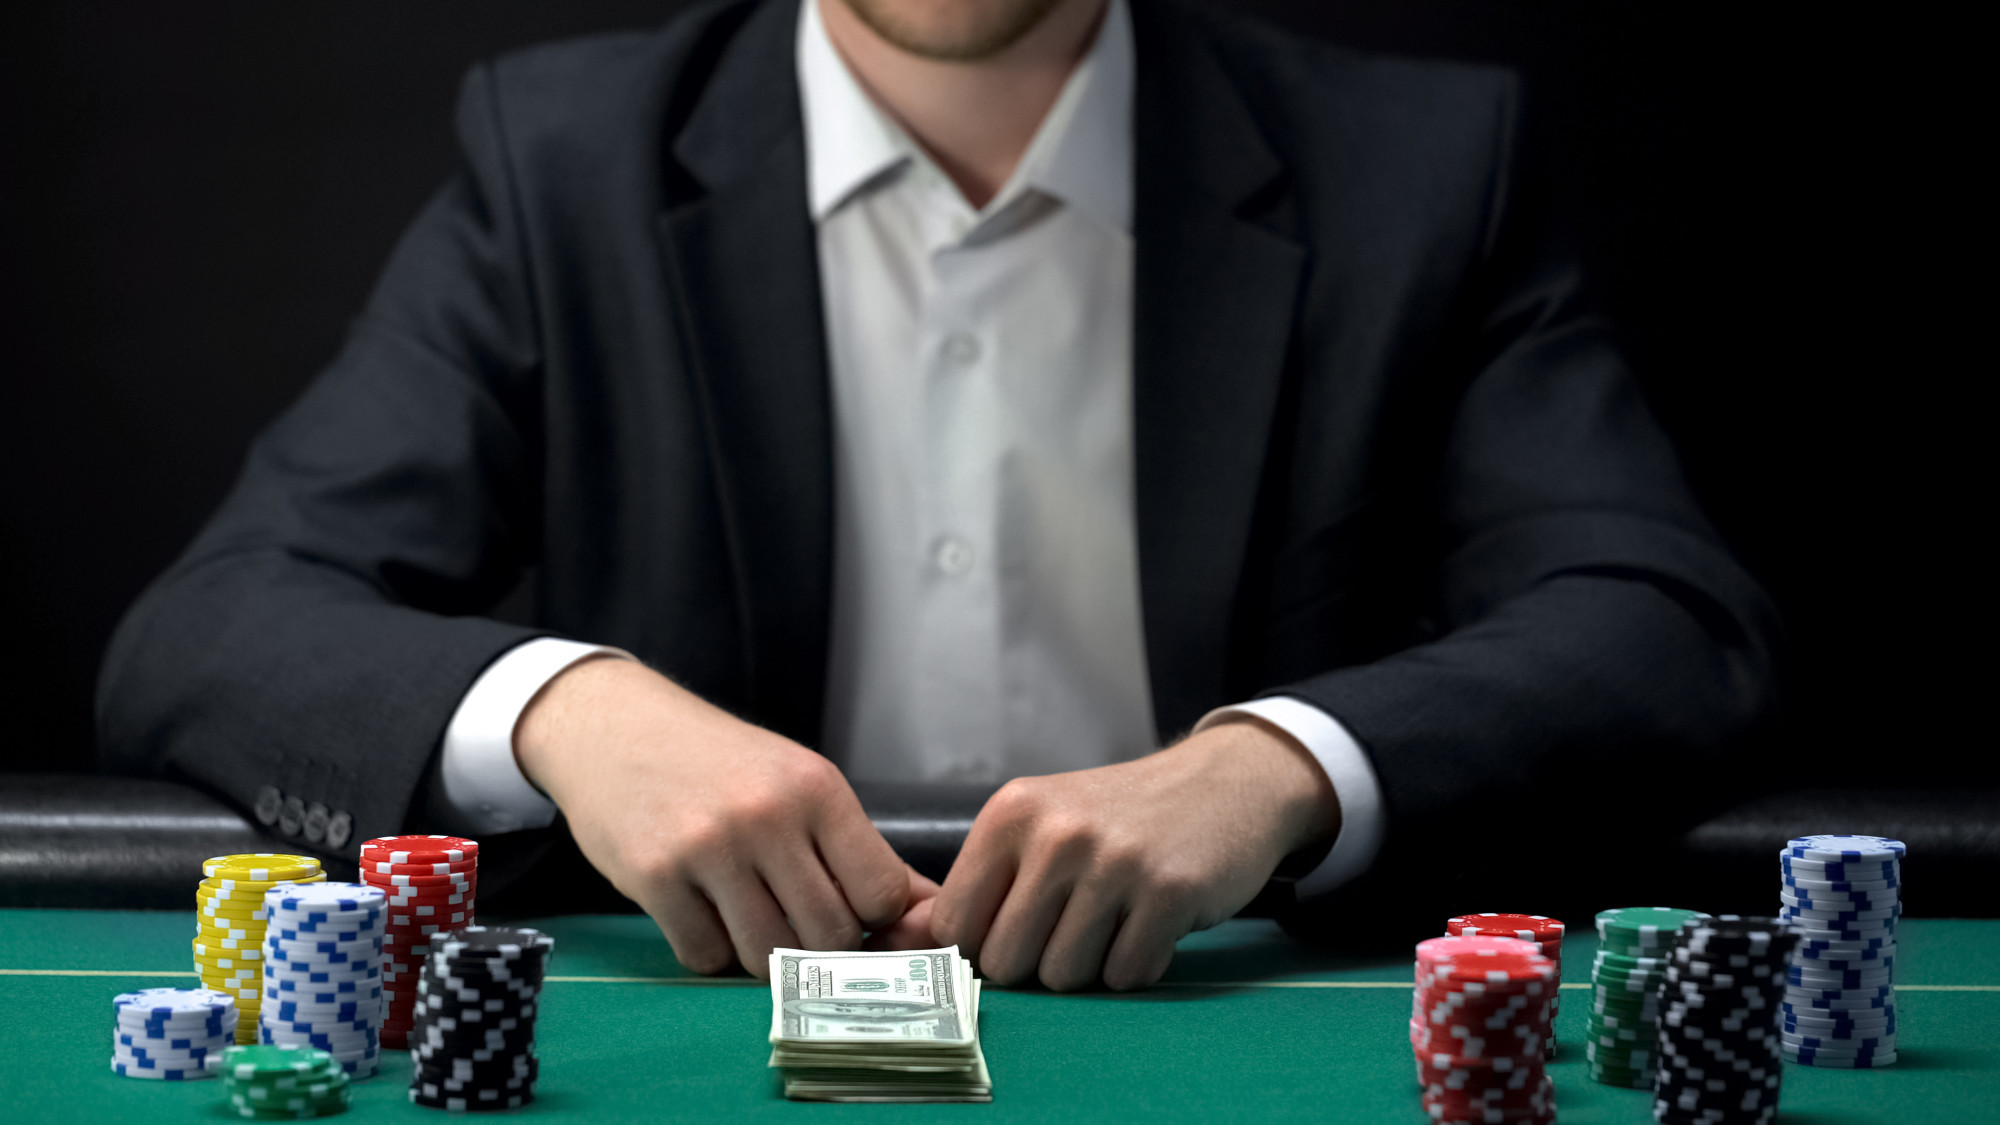 male gambler betting all chips and stack of money